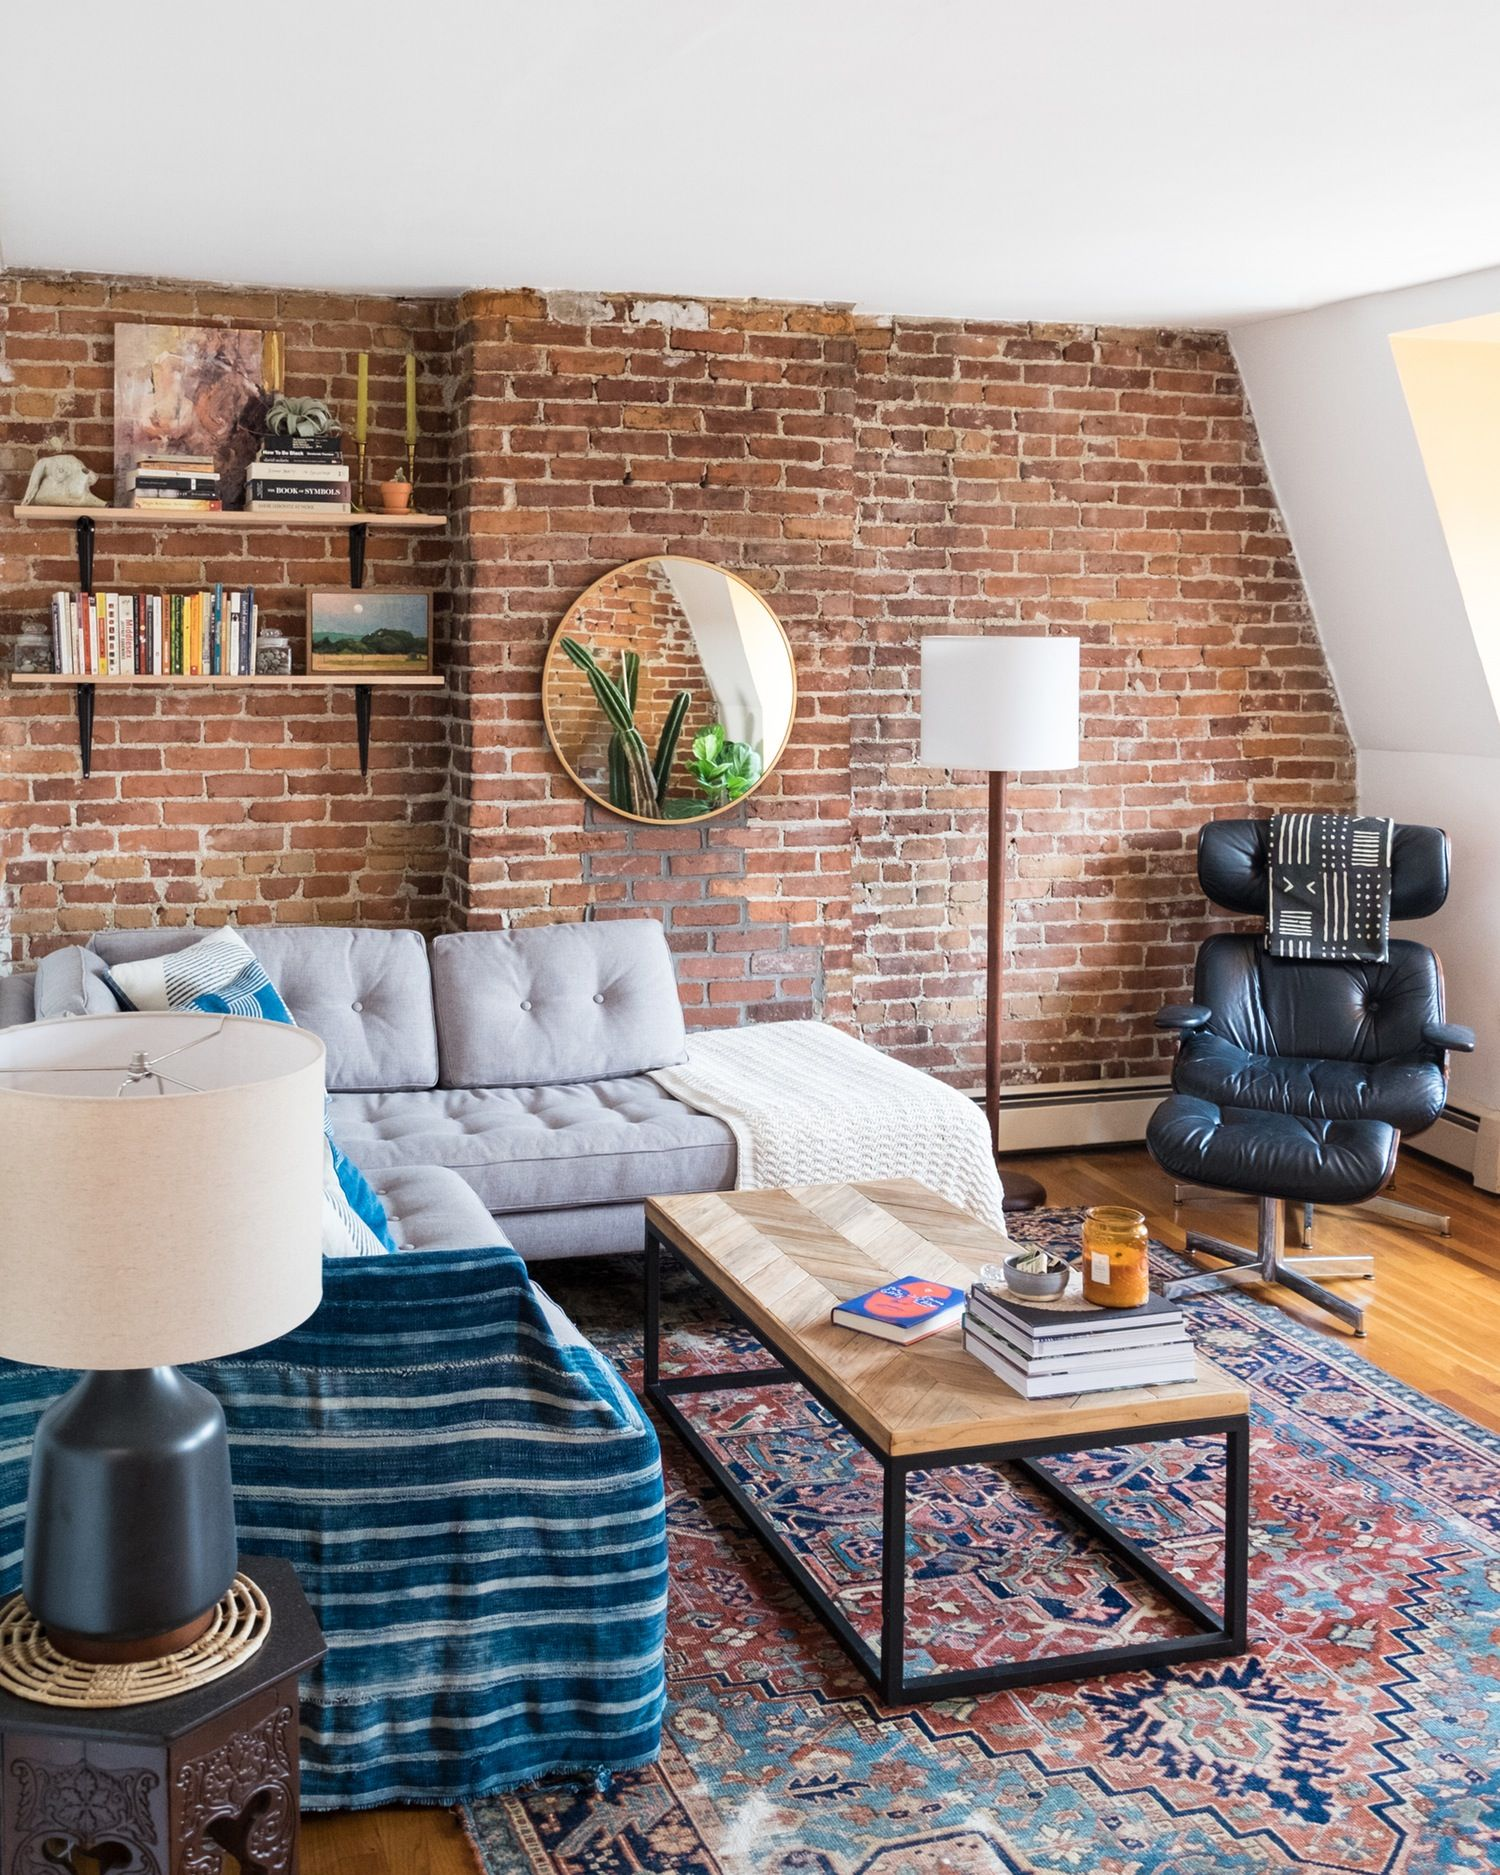 Get The Look Pared Down Comfort Brick Living Room Brick Wall Living Room Rugs In Living Room Living room brick wall